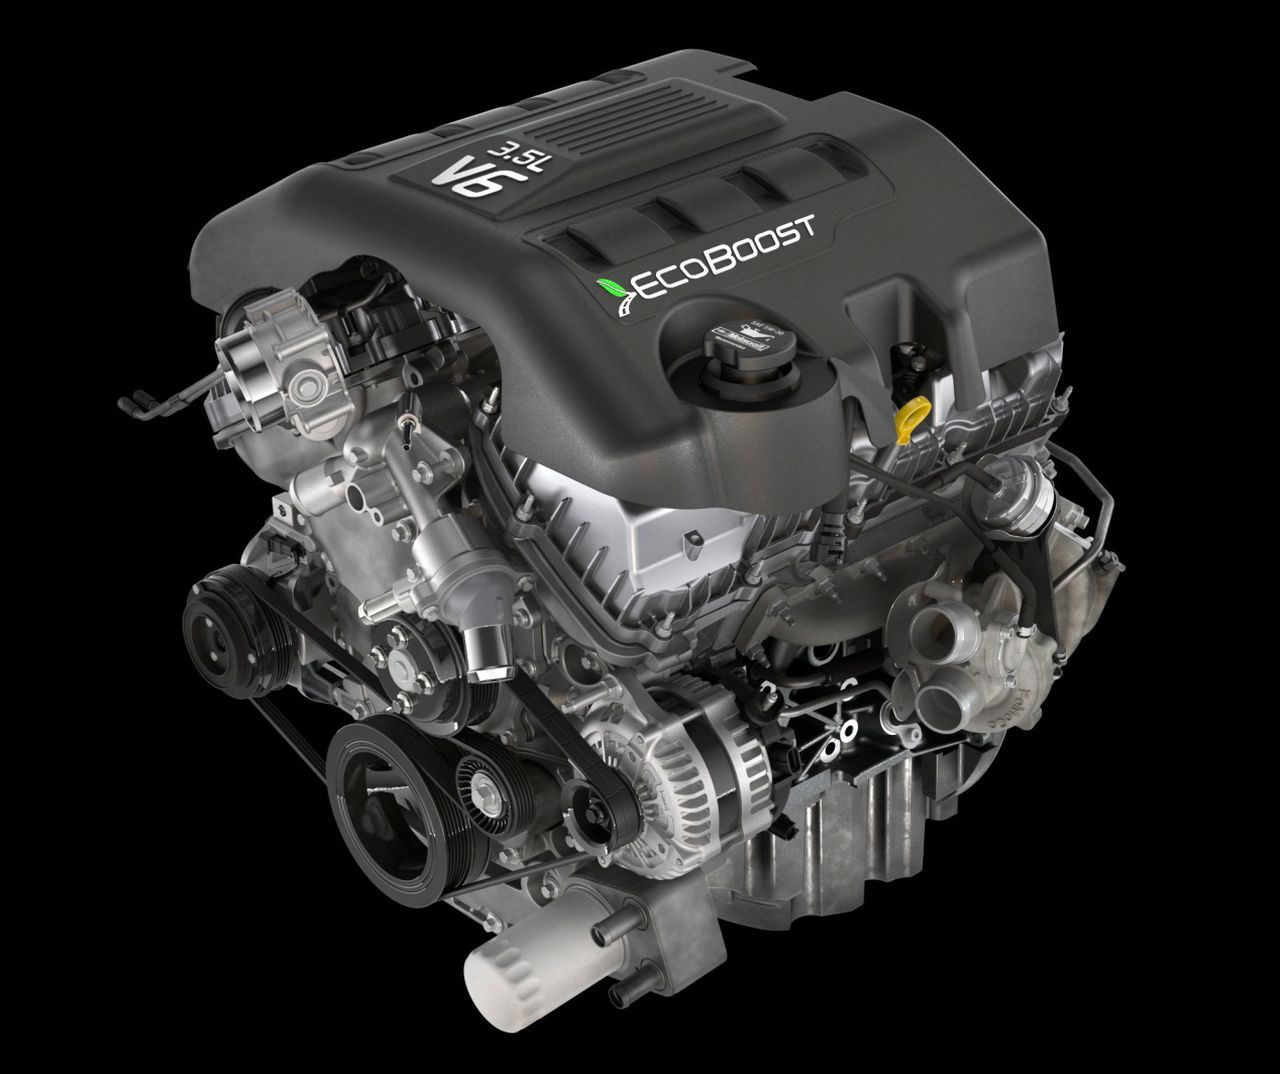 Ford s ecoboost engines may be getting monstrous upgrades with ecobeast patent